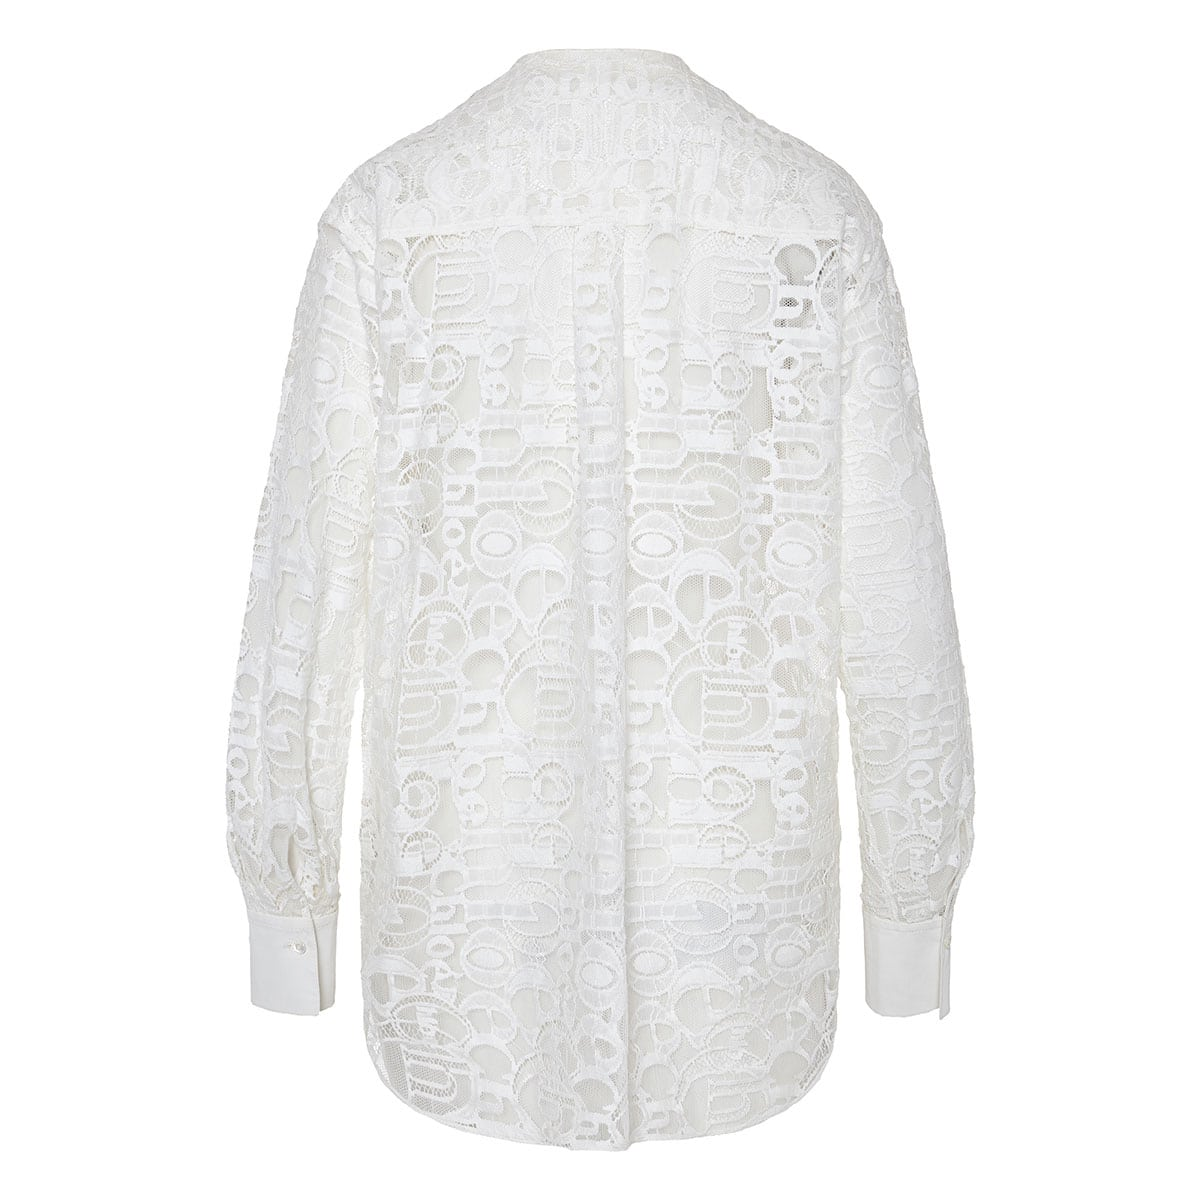 Logo-embroidered lace blouse